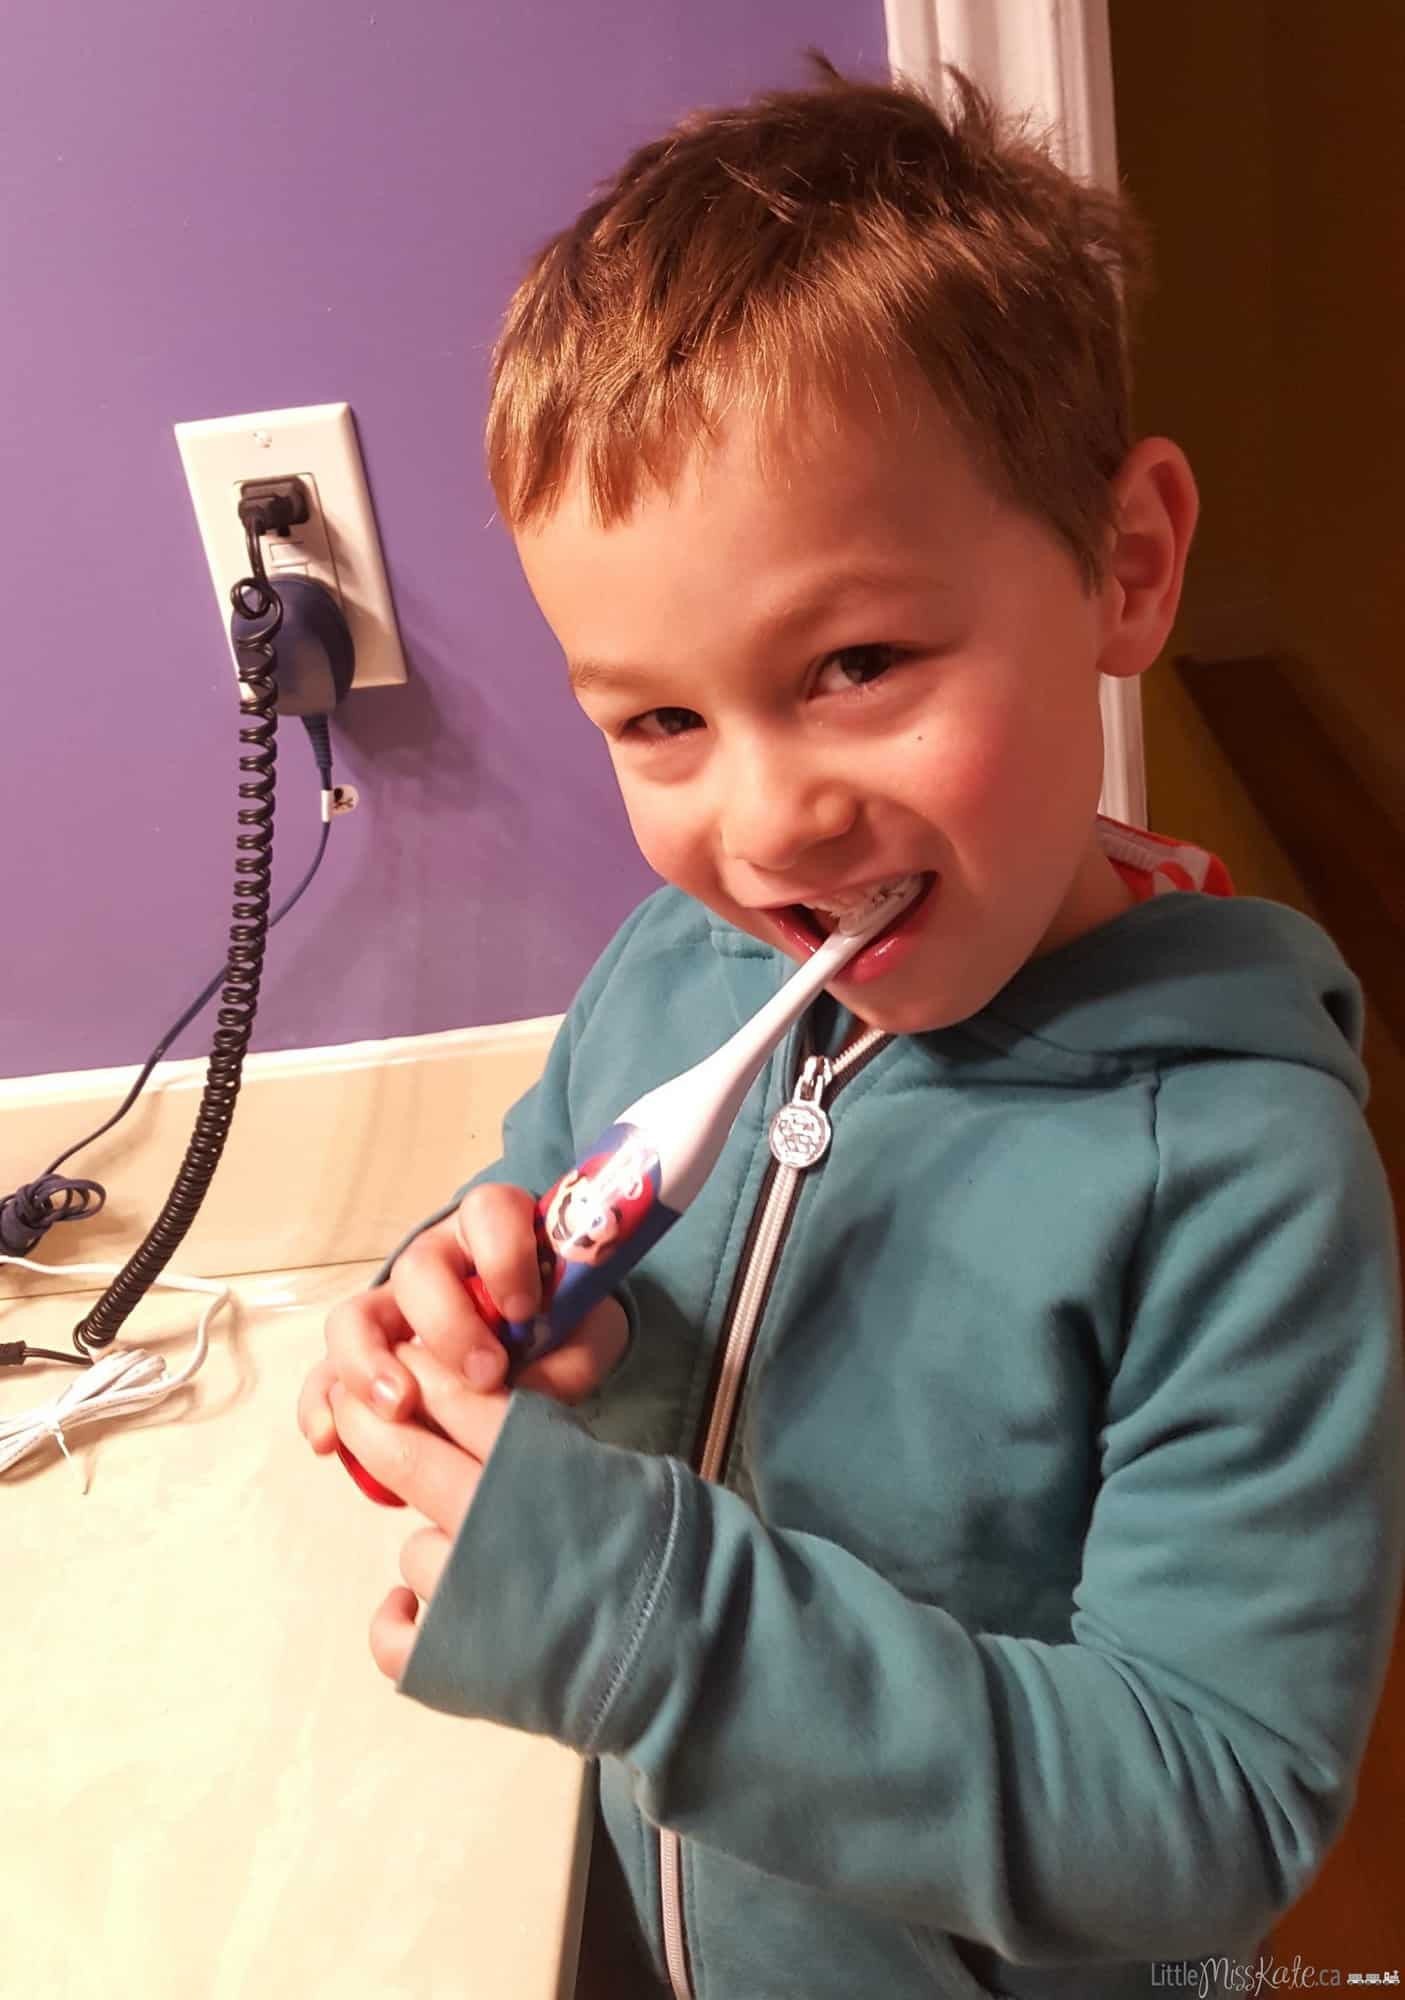 beat the sweets tooth brush tips